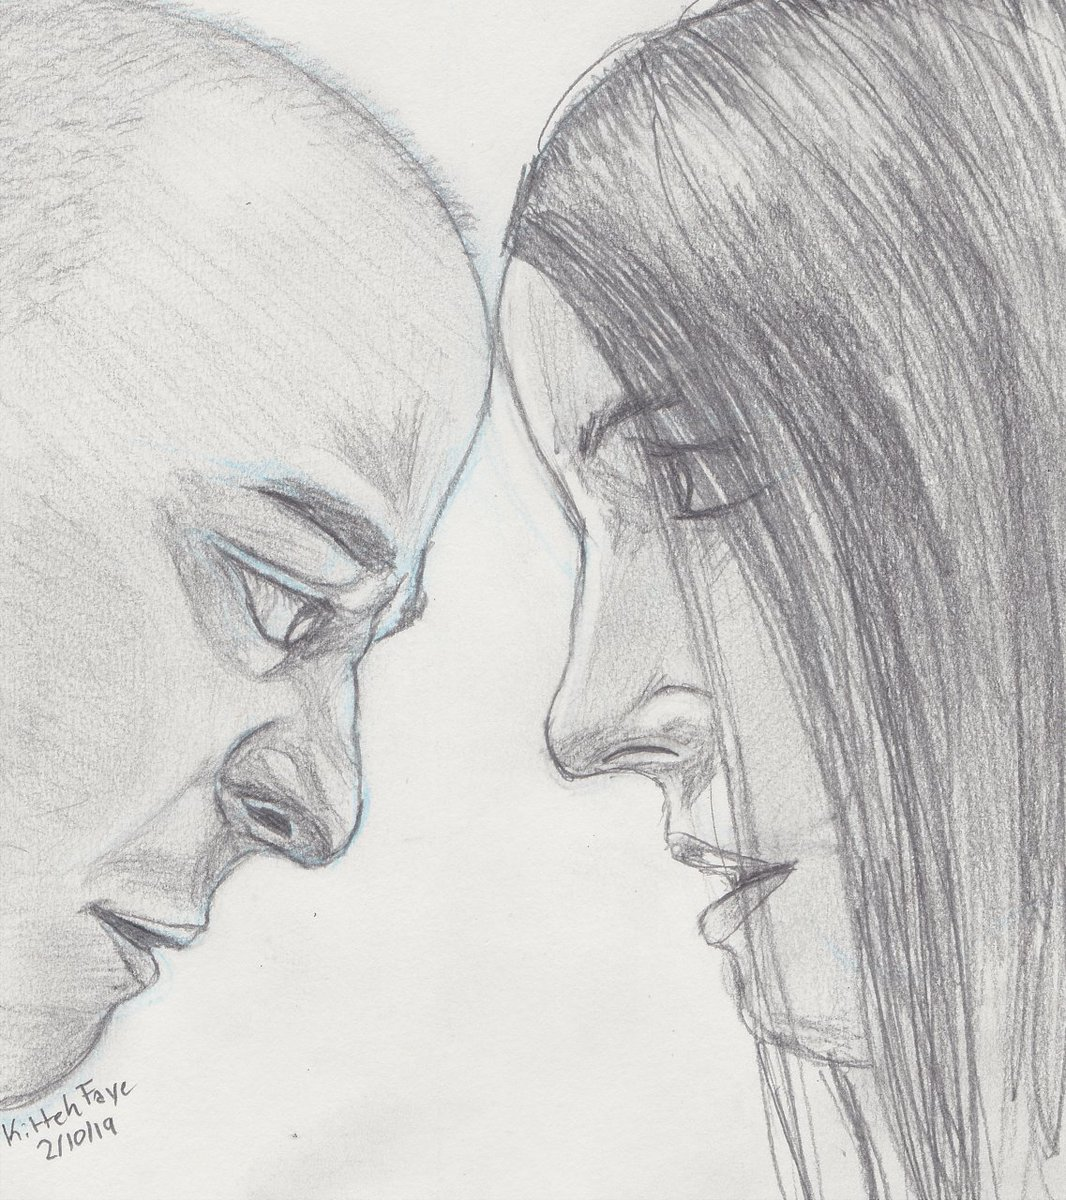 Happy Sunday everyone! Just finished my #art for tonight~ It&#39;s Kevin and Casey from #GlassMovie <br>http://pic.twitter.com/bi0KCY0ZEH